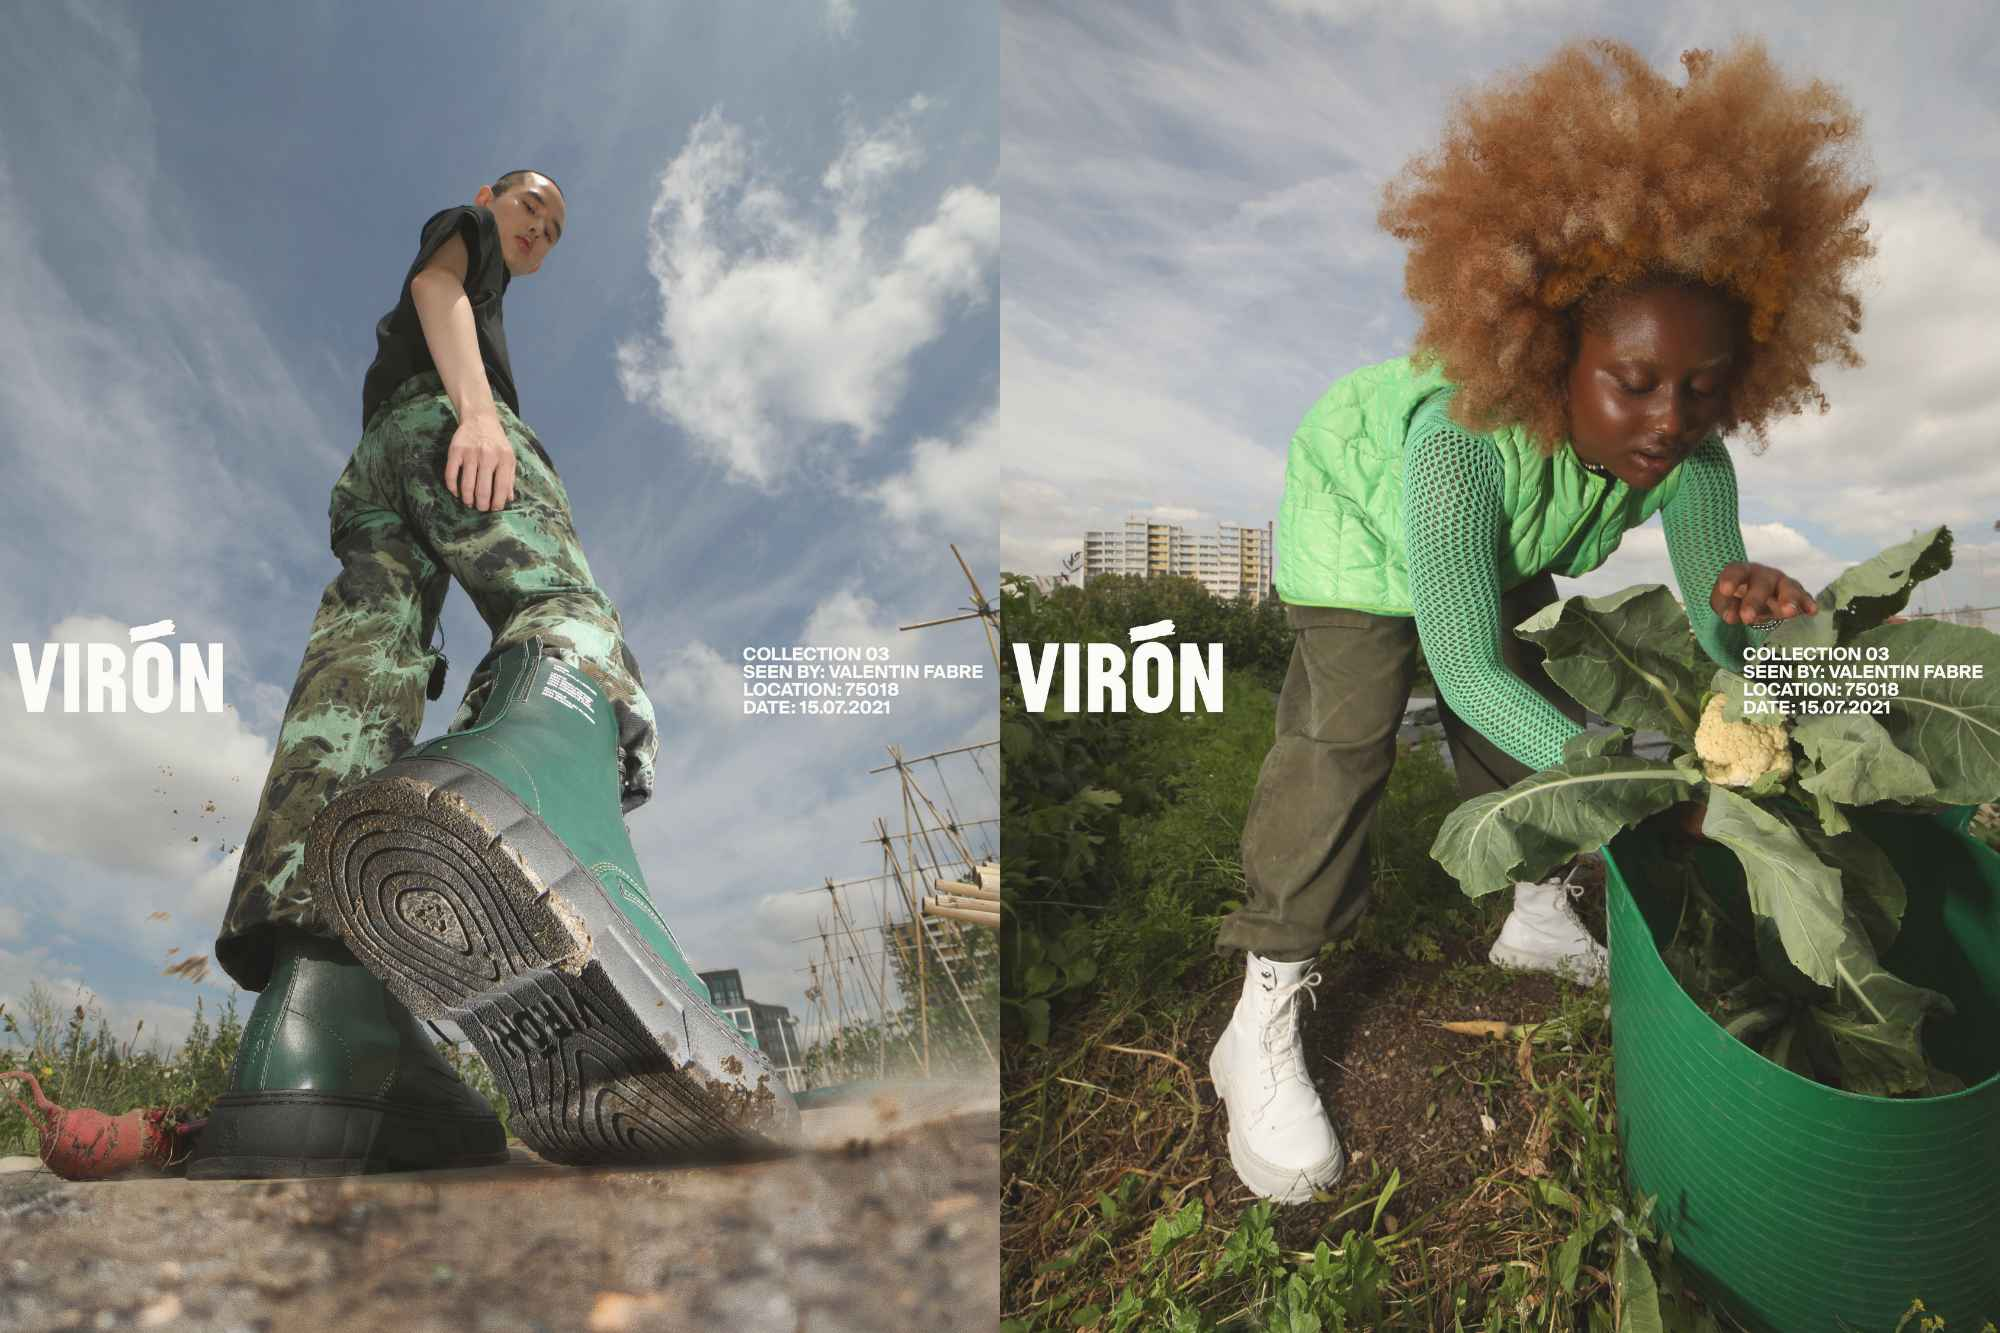 These streetwear brands focus on sustainability and are doing amazing stuff (Duarte, Viron, Raeburn)